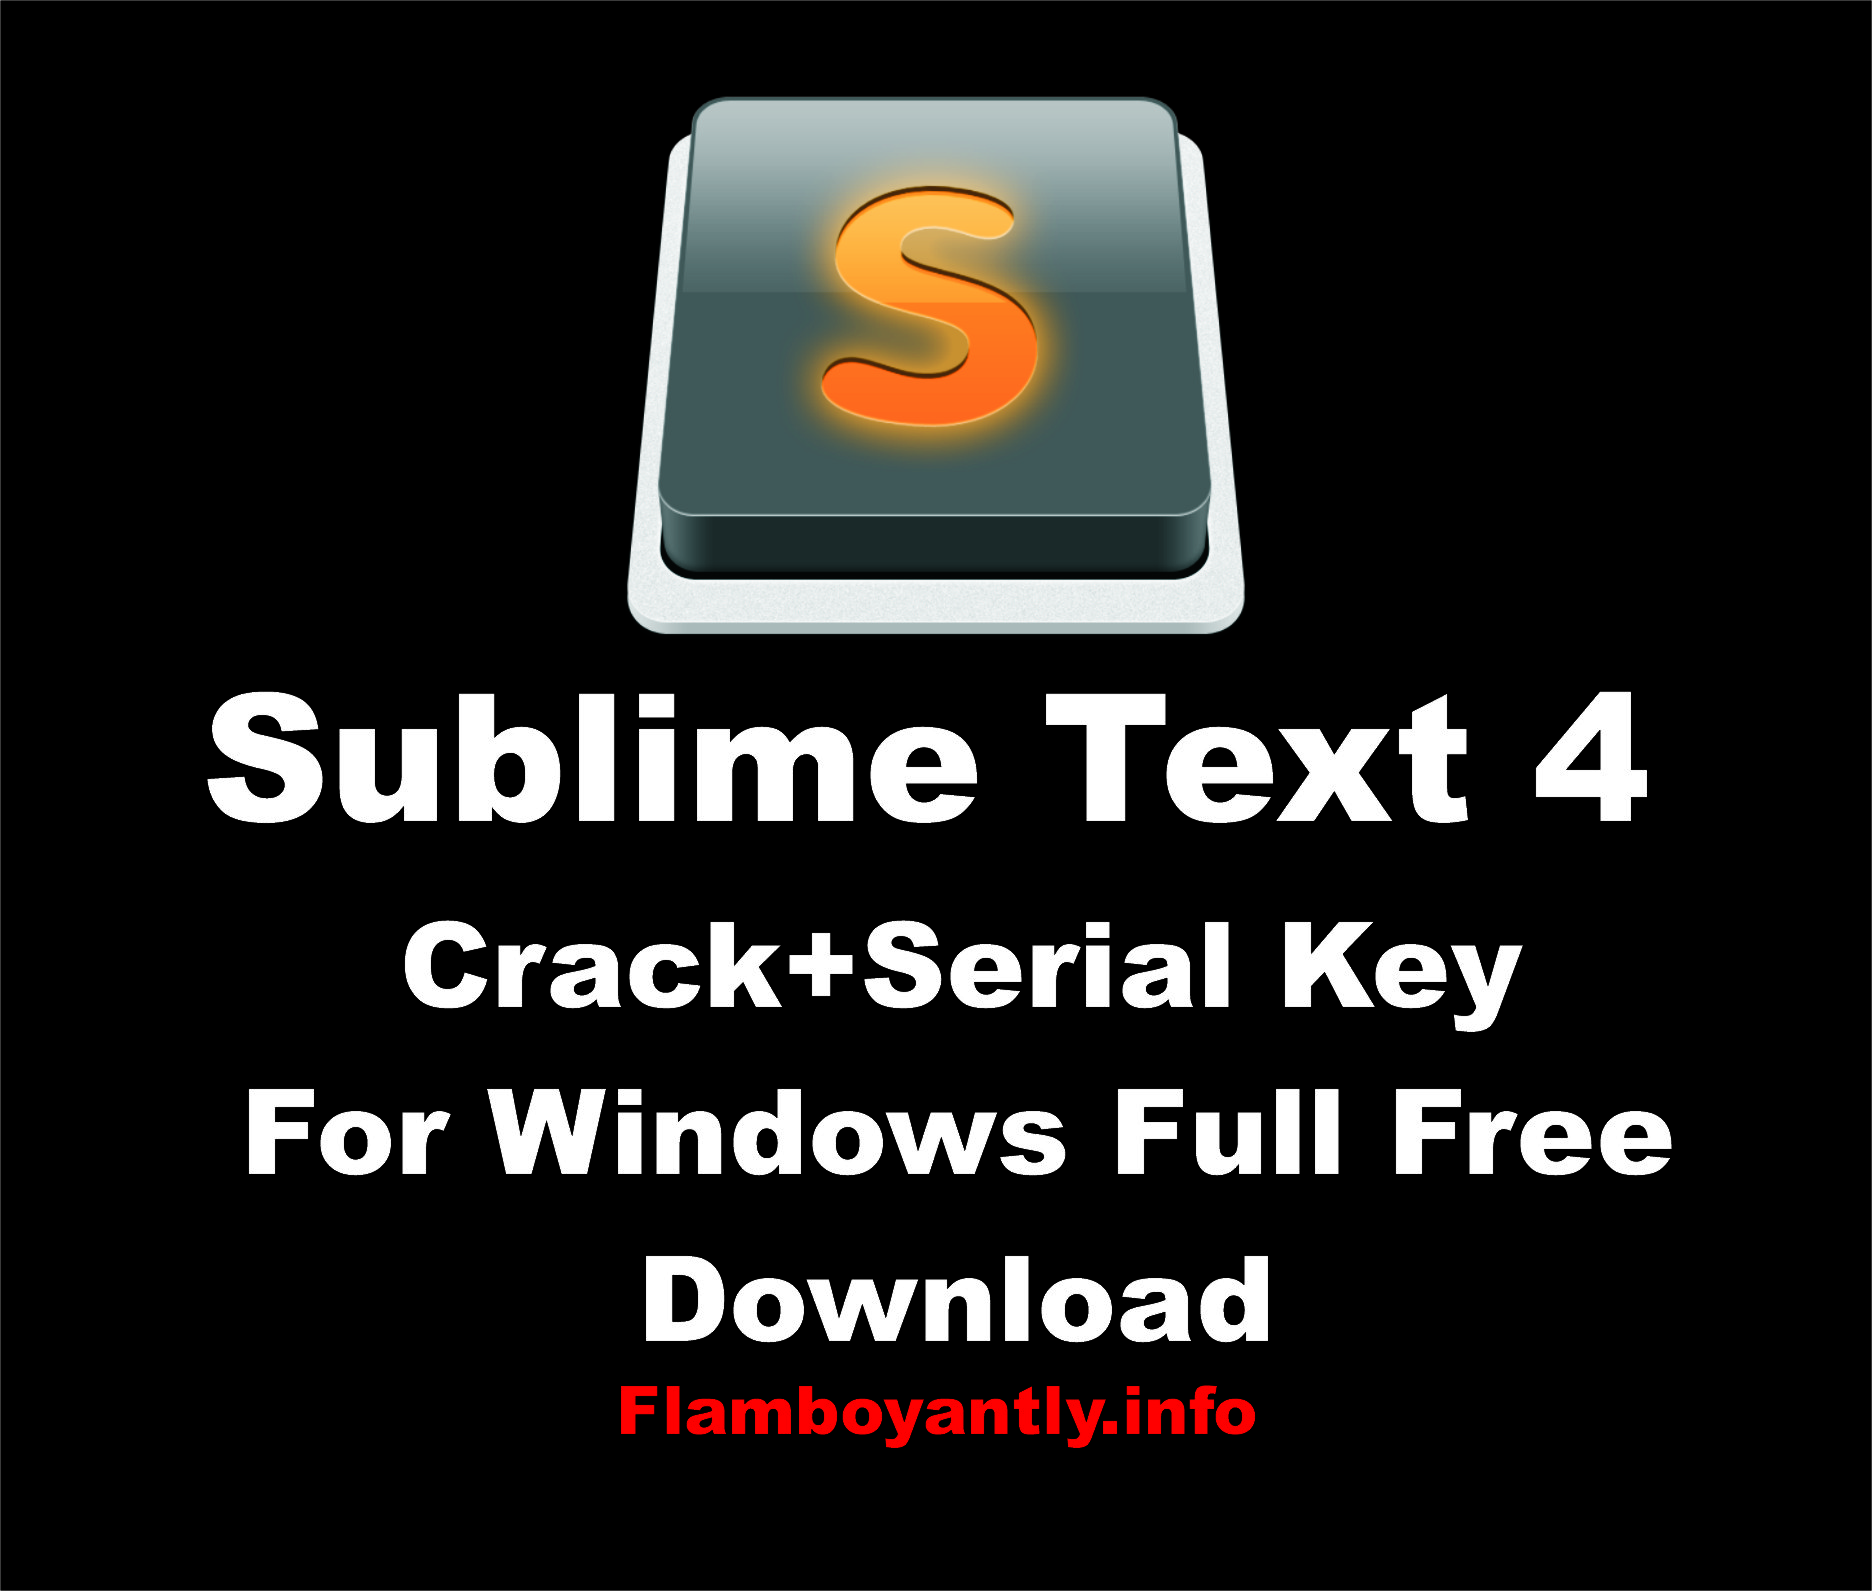 Sublime Text 4 Crack+Serial Key For Windows Full Free Download